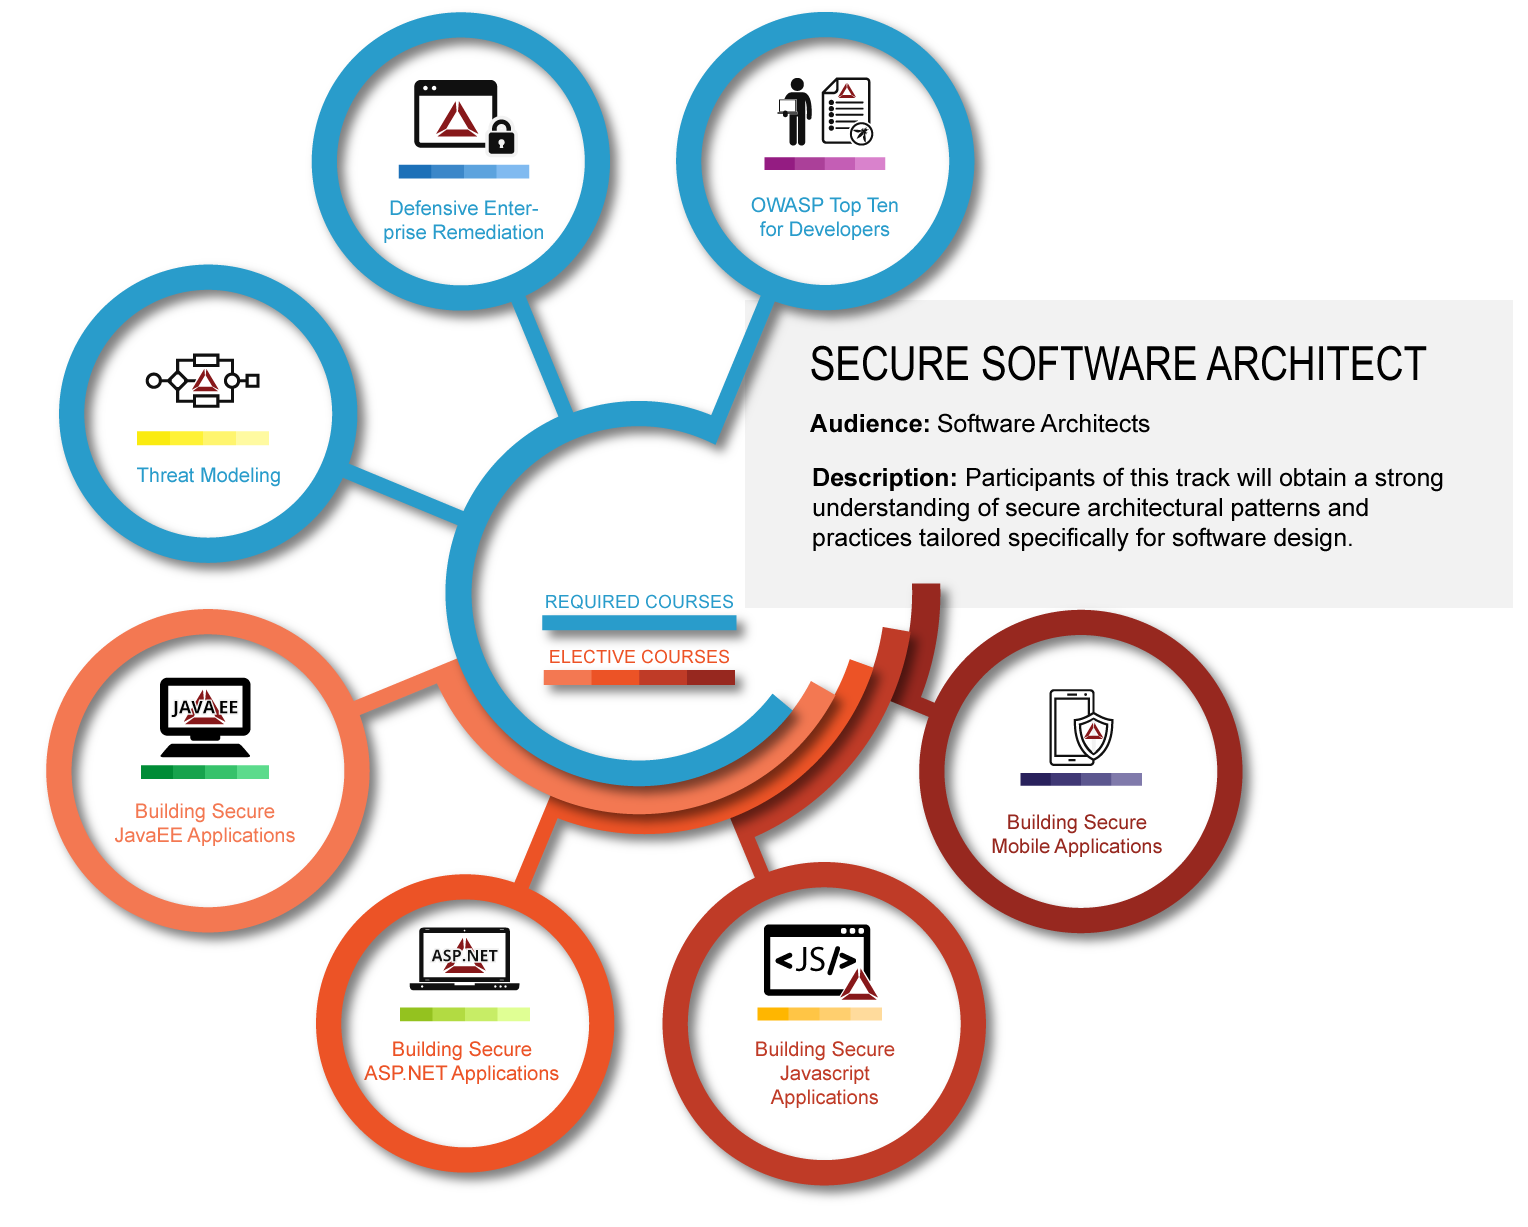 Secure Software Architect